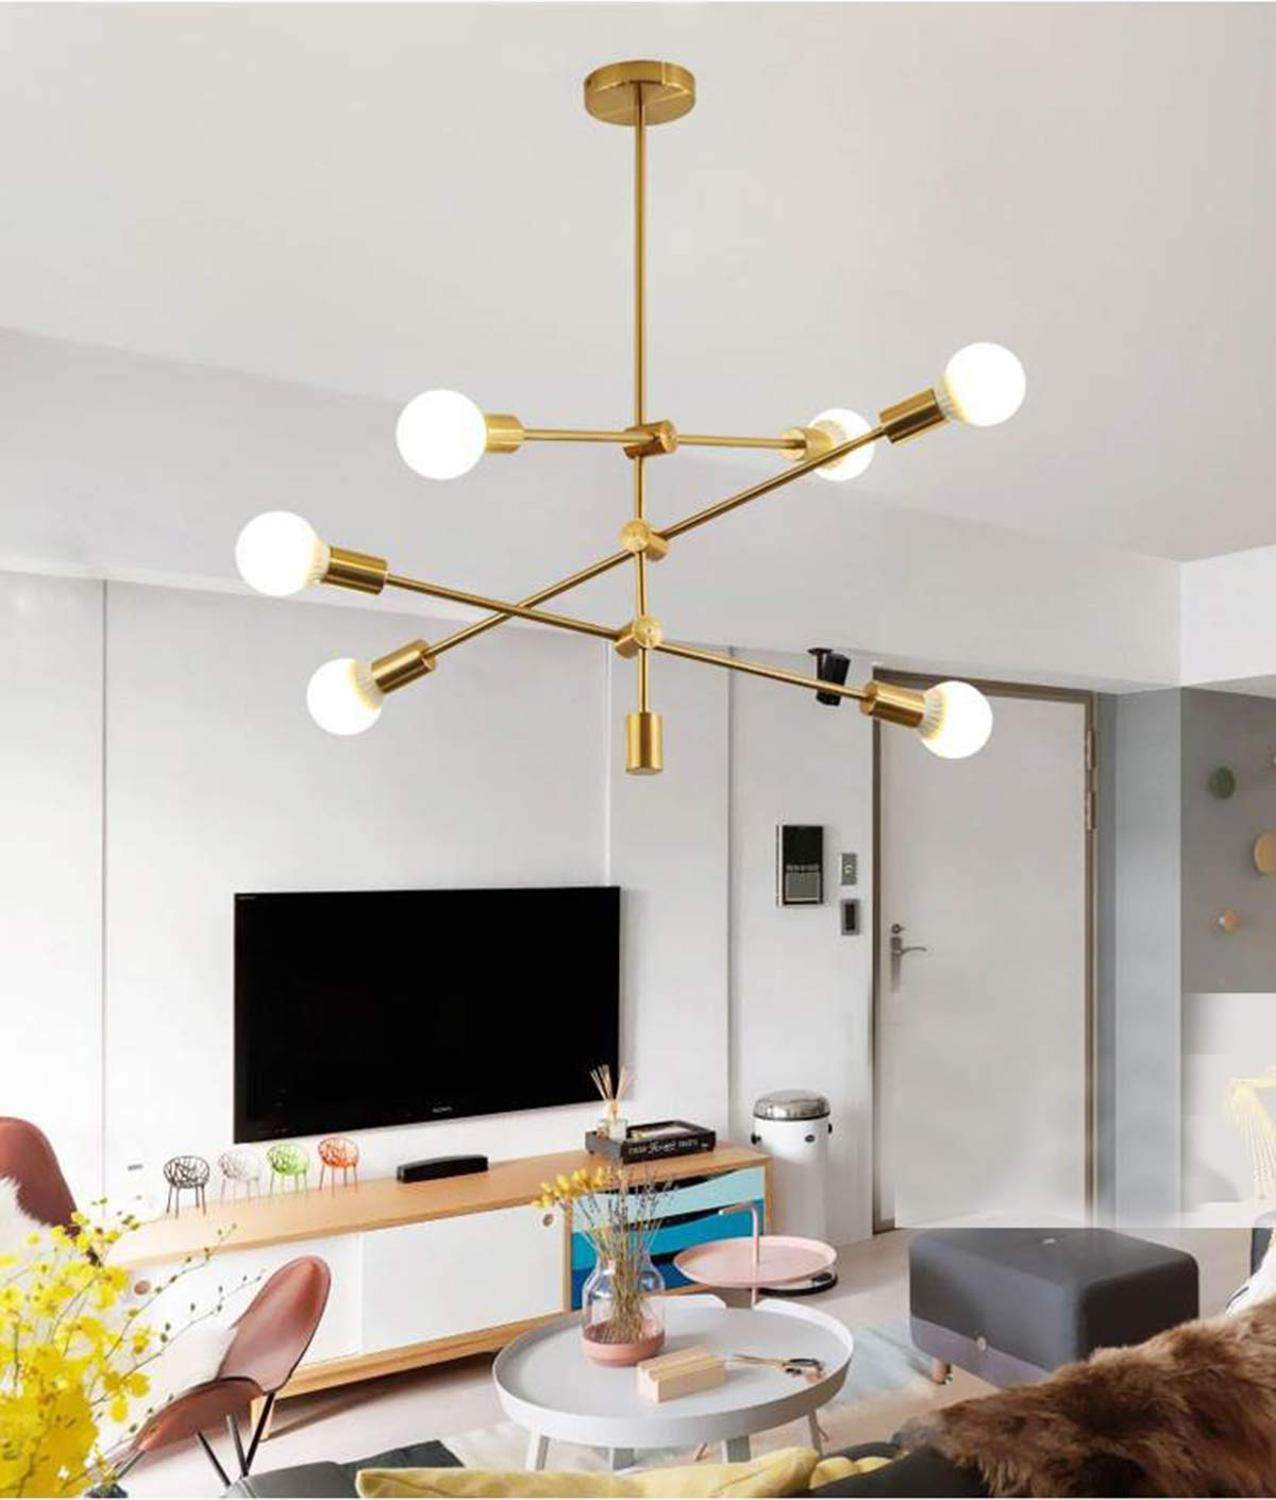 Modern Chandeliers Sputnik Mount Ceiling Light Mid Century Brushed Nickel Glass Pendant Lighting Fixture for Bedroom